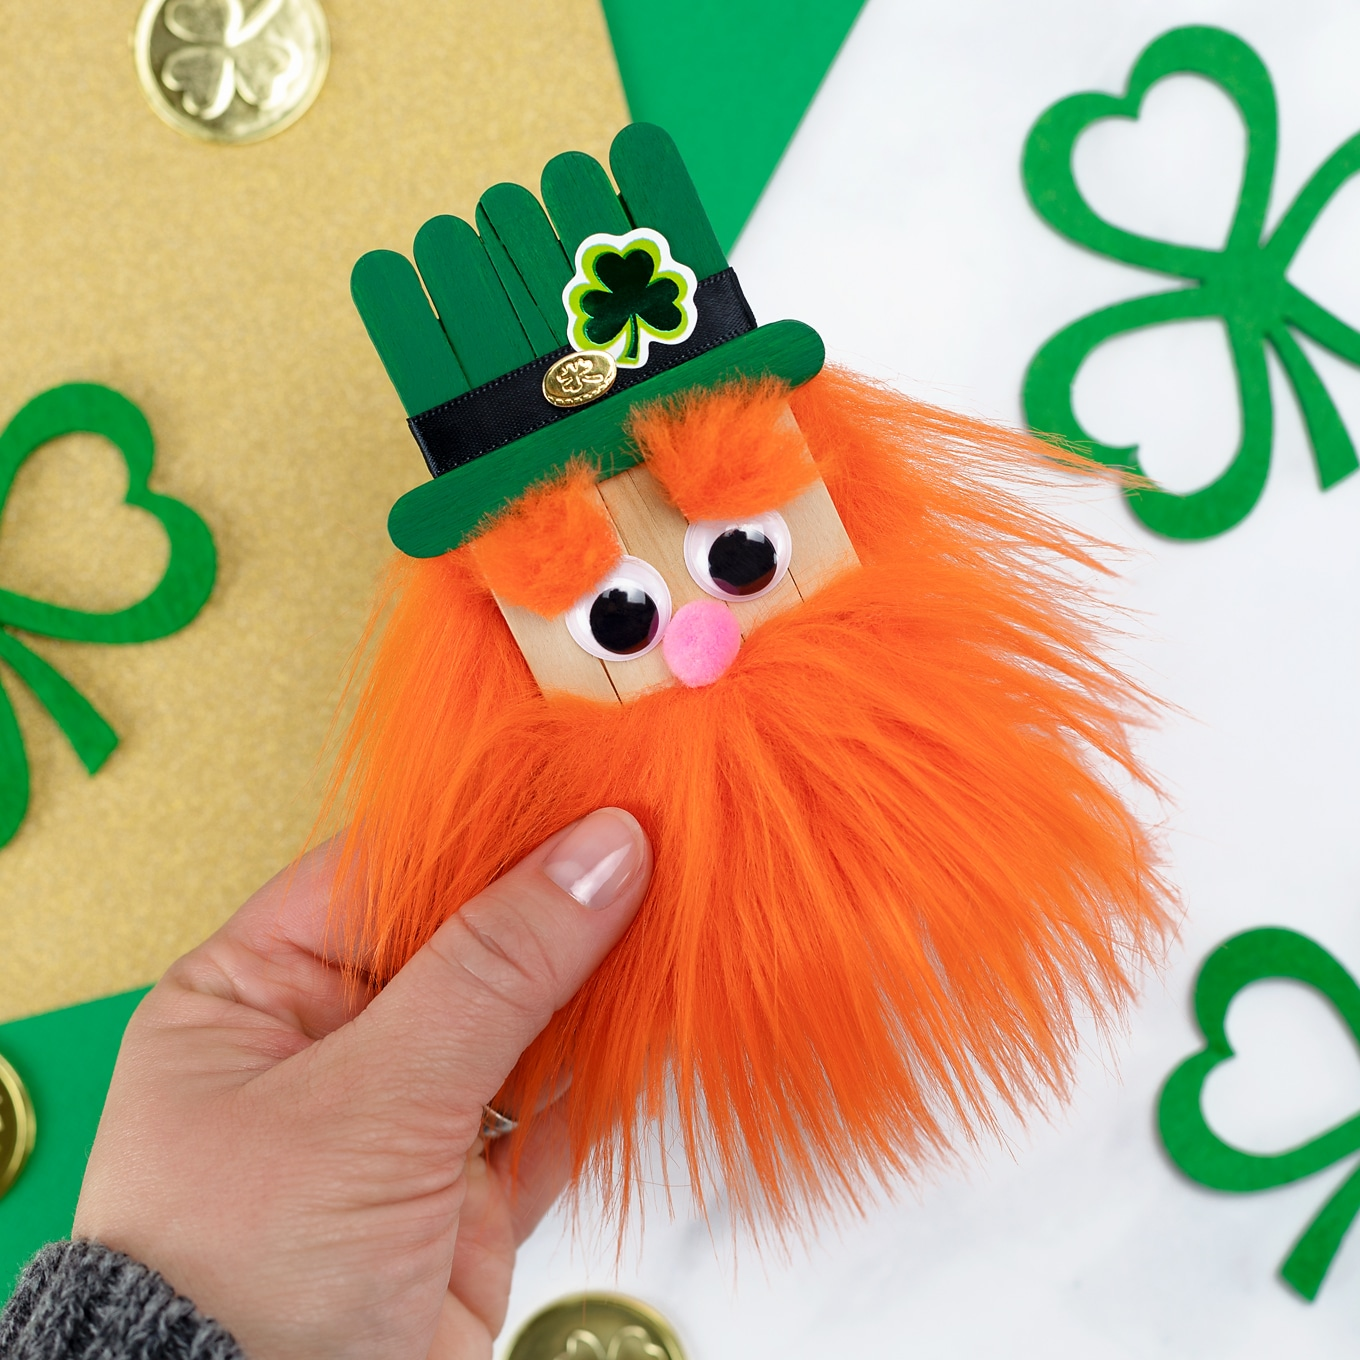 DIY Popsicle Stick Leprechaun Craft